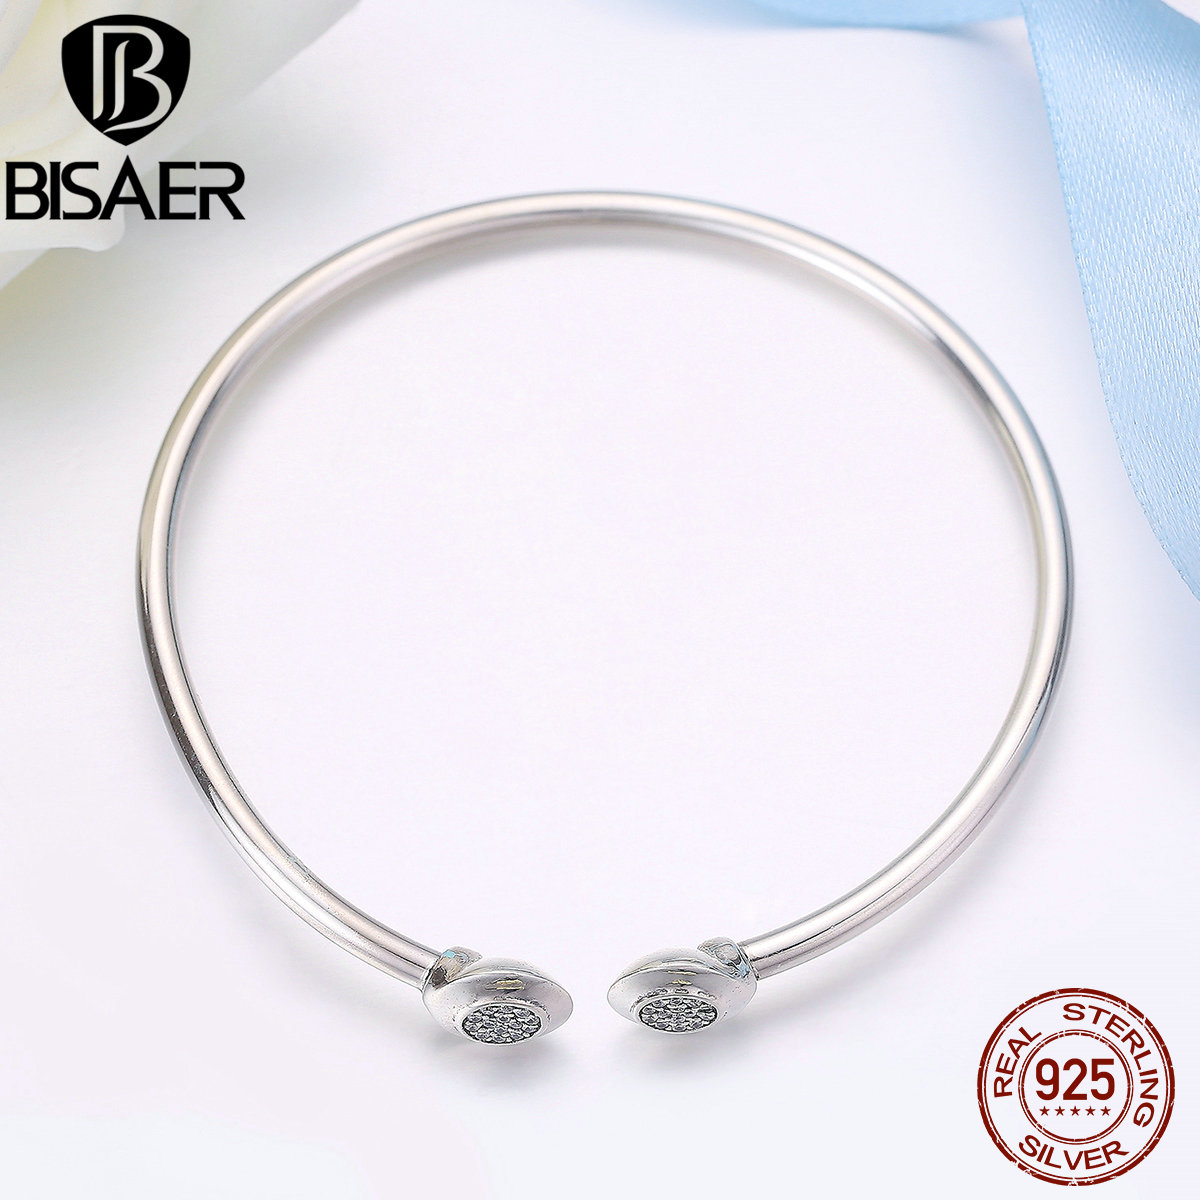 100% 925 Sterling Silver Signature, Clear CZ Snake Chain Bracelet & Bangle Sterling Silver 925 Jewelry Making Pulseira GOS918 925 sterling silver jewelry signature bangle bracelet with clear cz and real 14k gold fine jewelry trendy bangles for women 049k